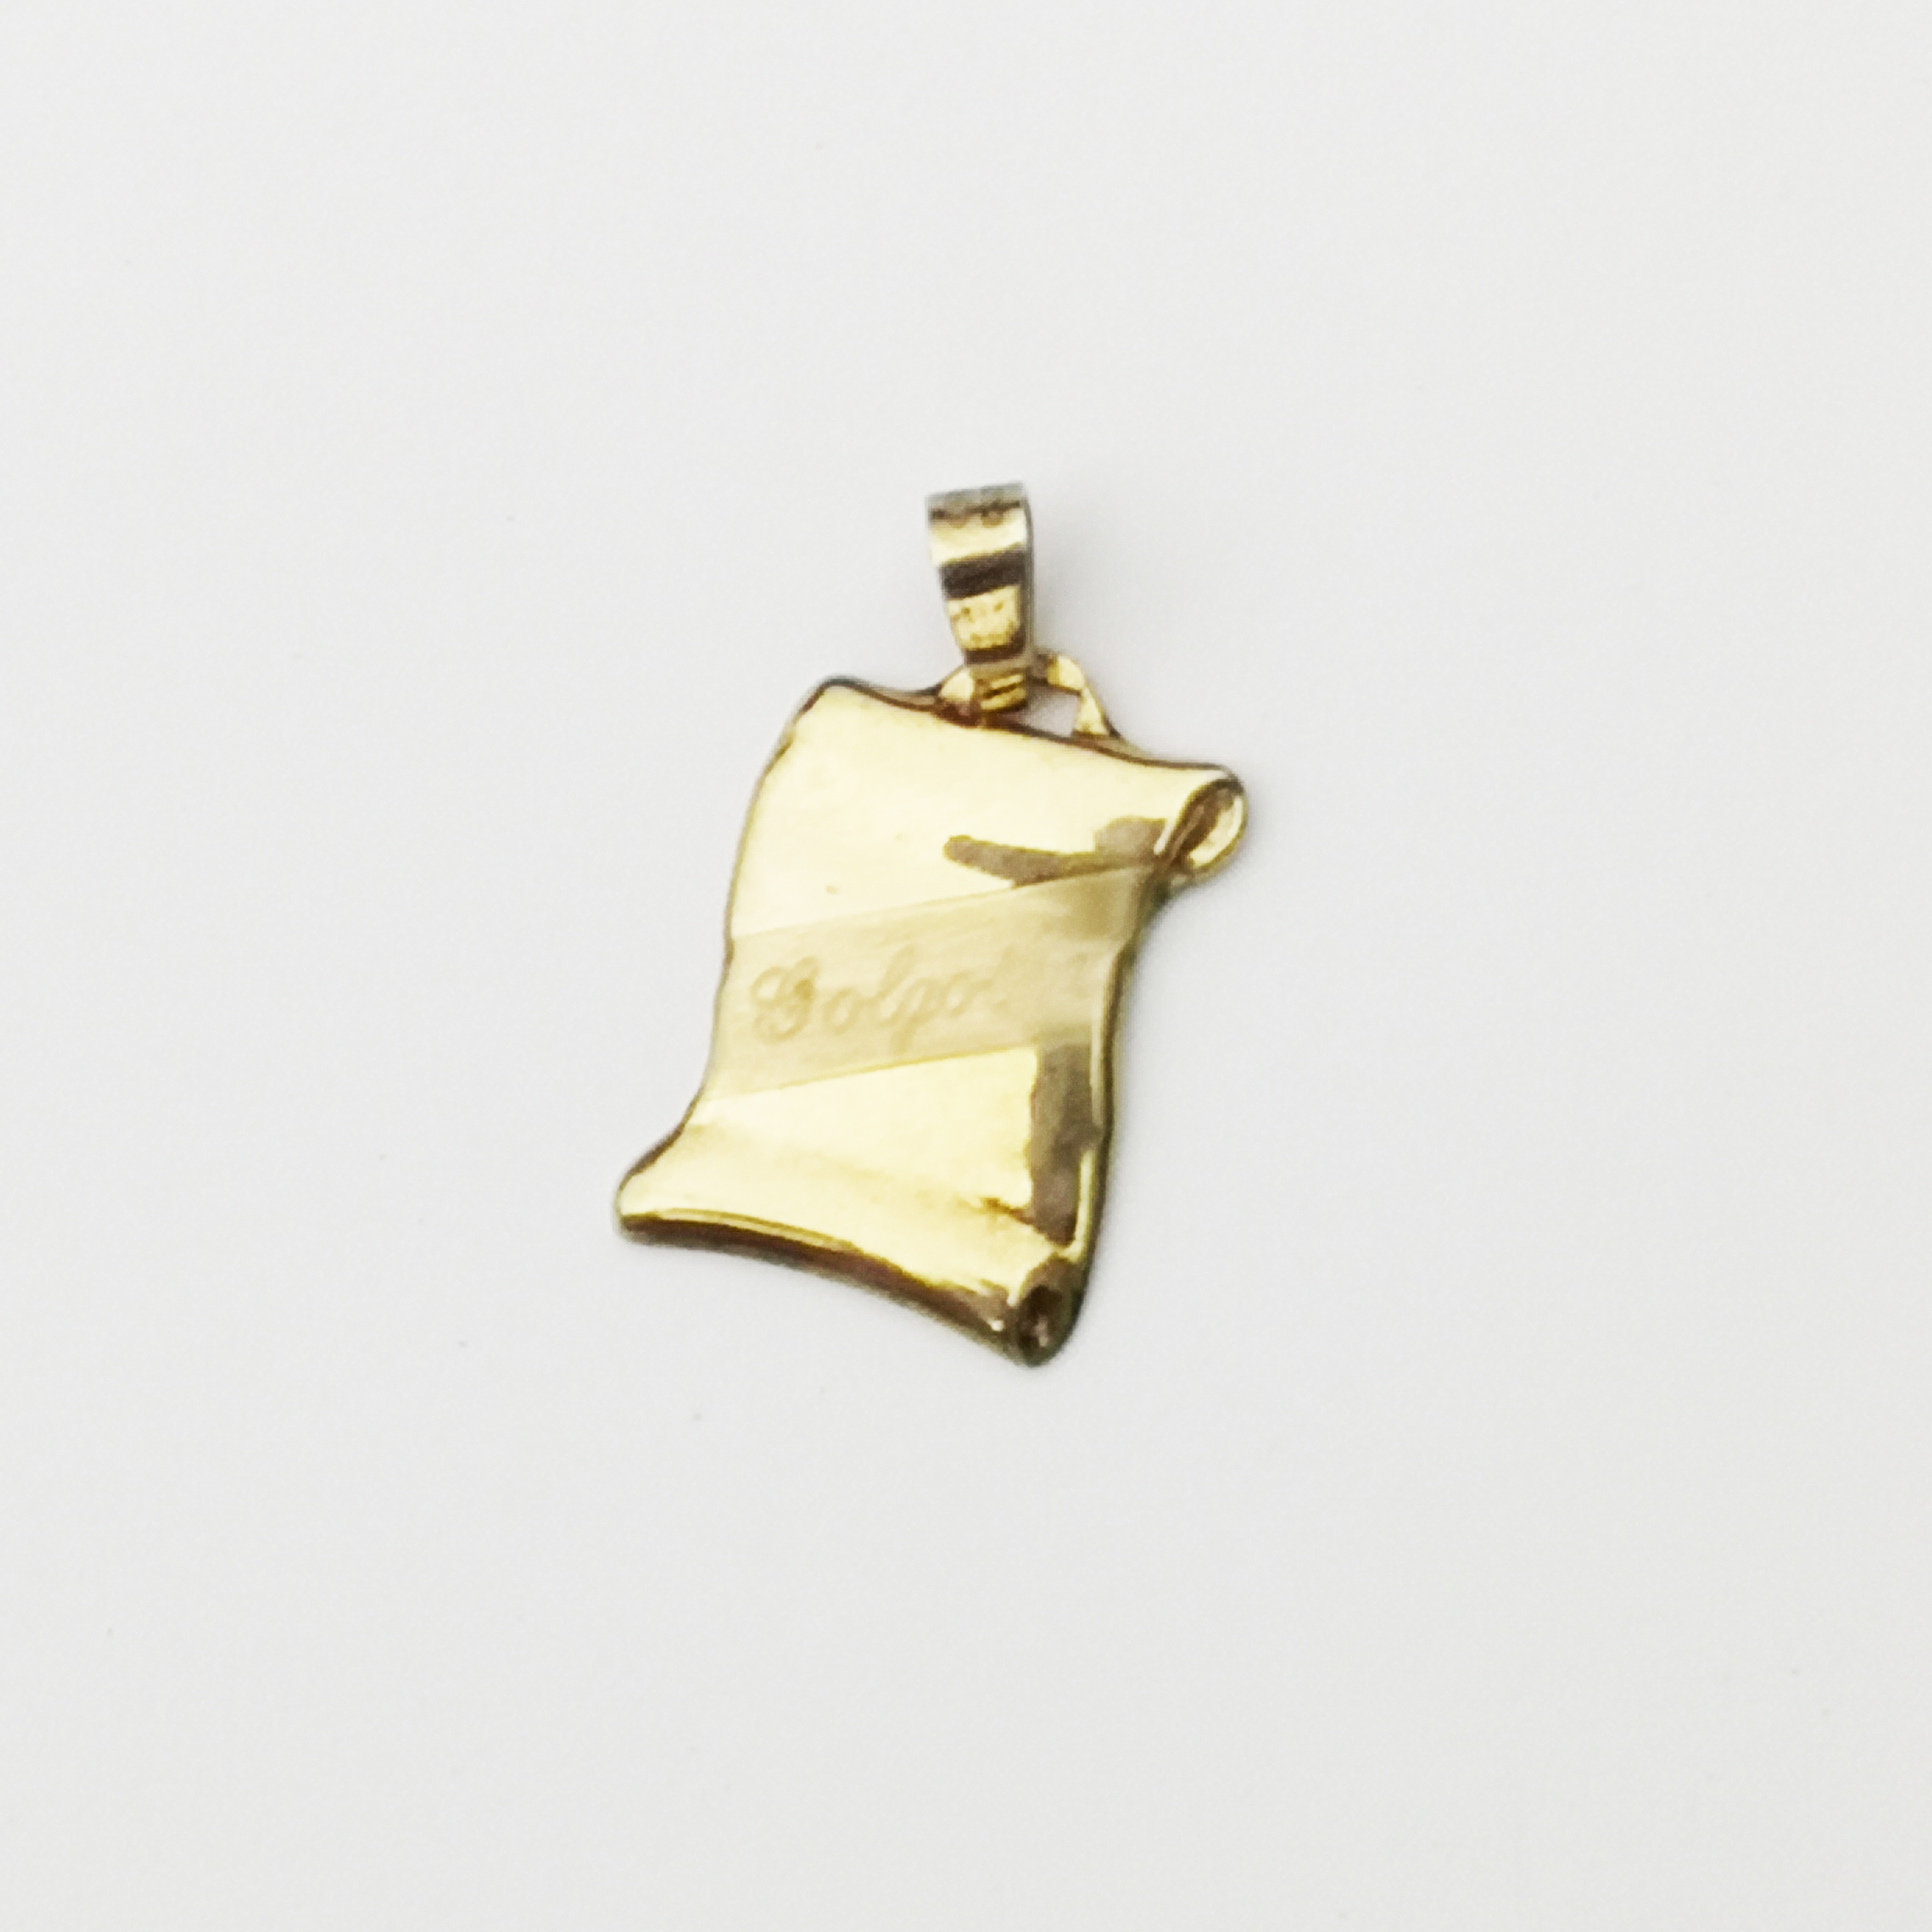 PAPER PENDANT TOP (GOLGOTHA) / 925 Sterling Silver plated in 23K Gold